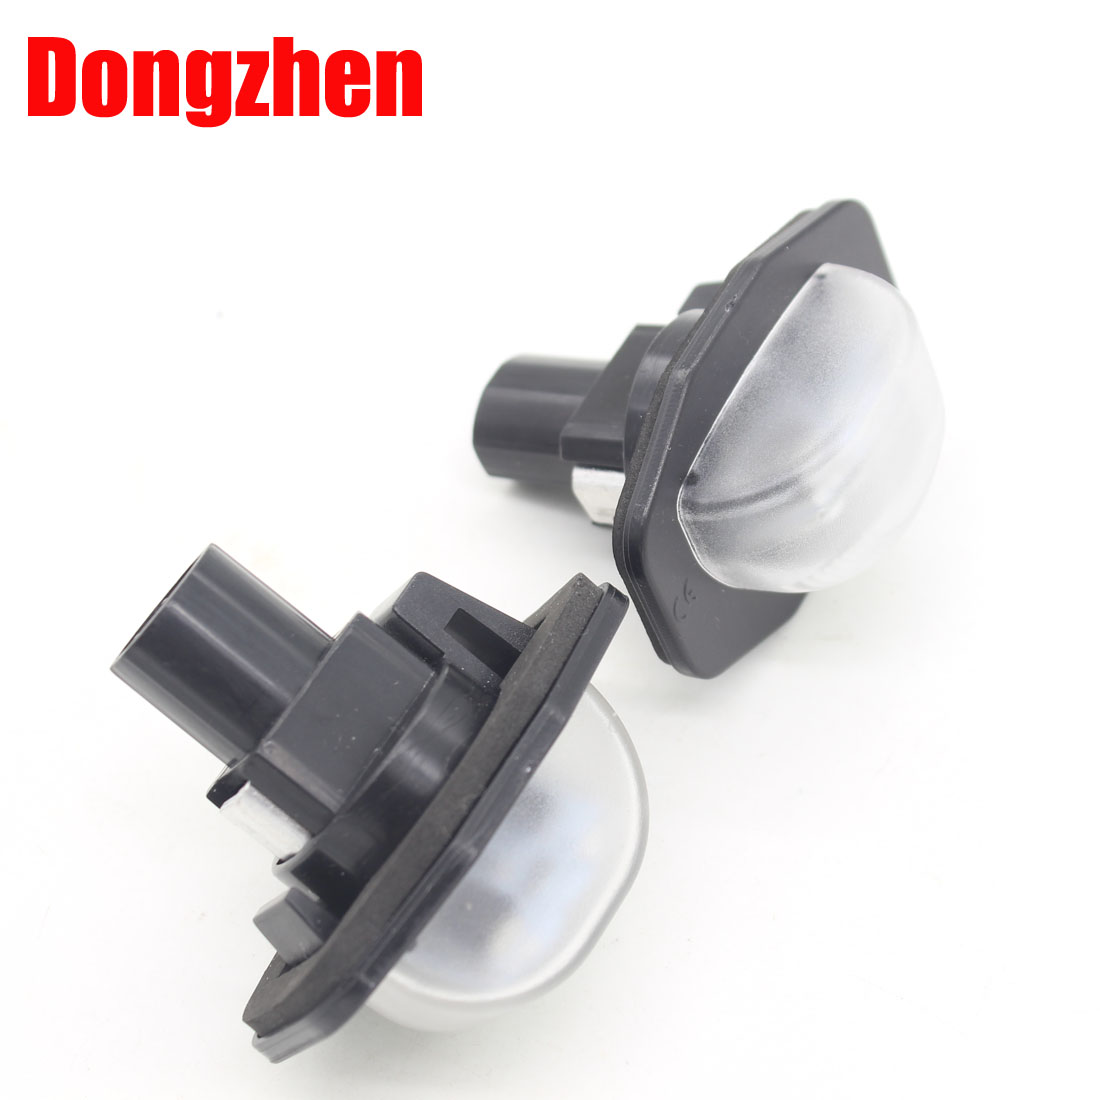 Dongzhen Top quality Error free LED License Plate Light Fit For Toyota Alphard Auris Corolla Wish Sienna Urban 2pcs new design digital pvs 14 night vision scope for hunting wargame cl27 0008